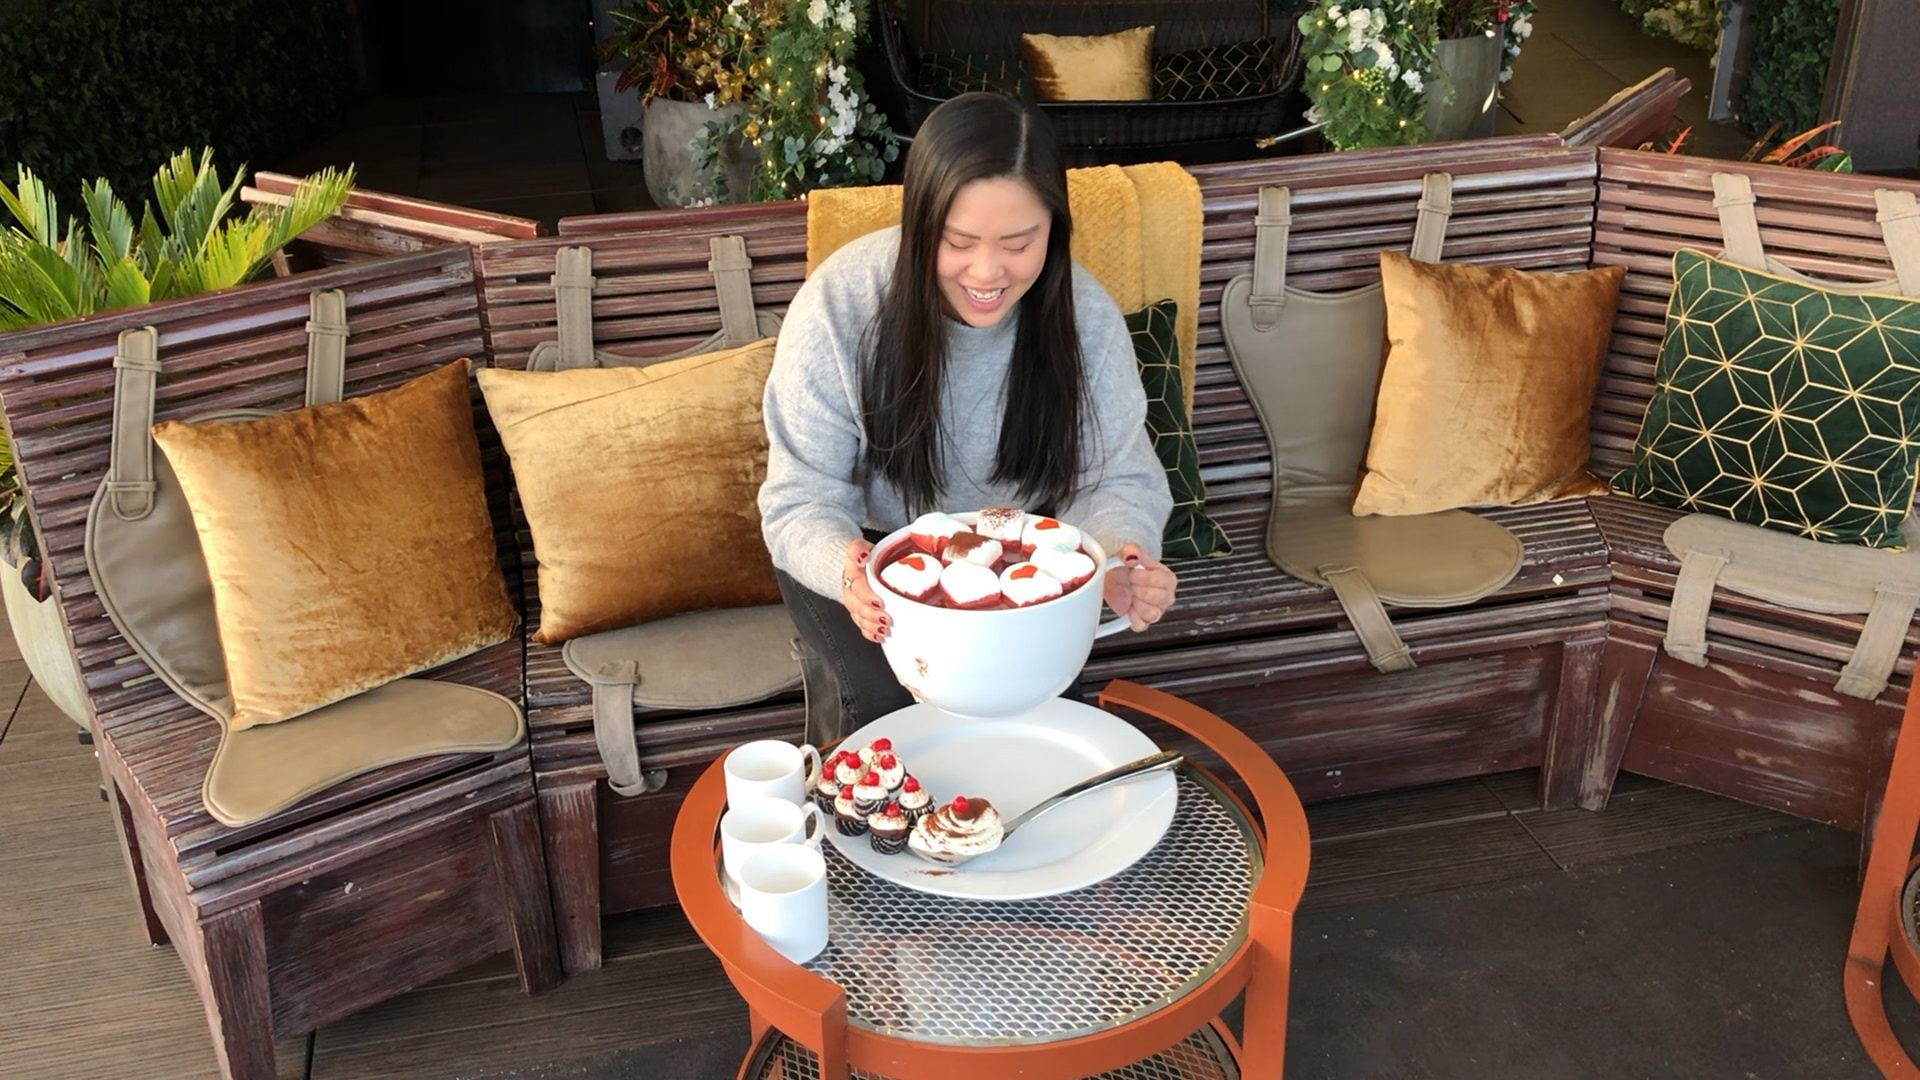 This GIANT Spiked Red Velvet Hot Cocoa Weighs 15 Pounds—And Gets Set On Fire